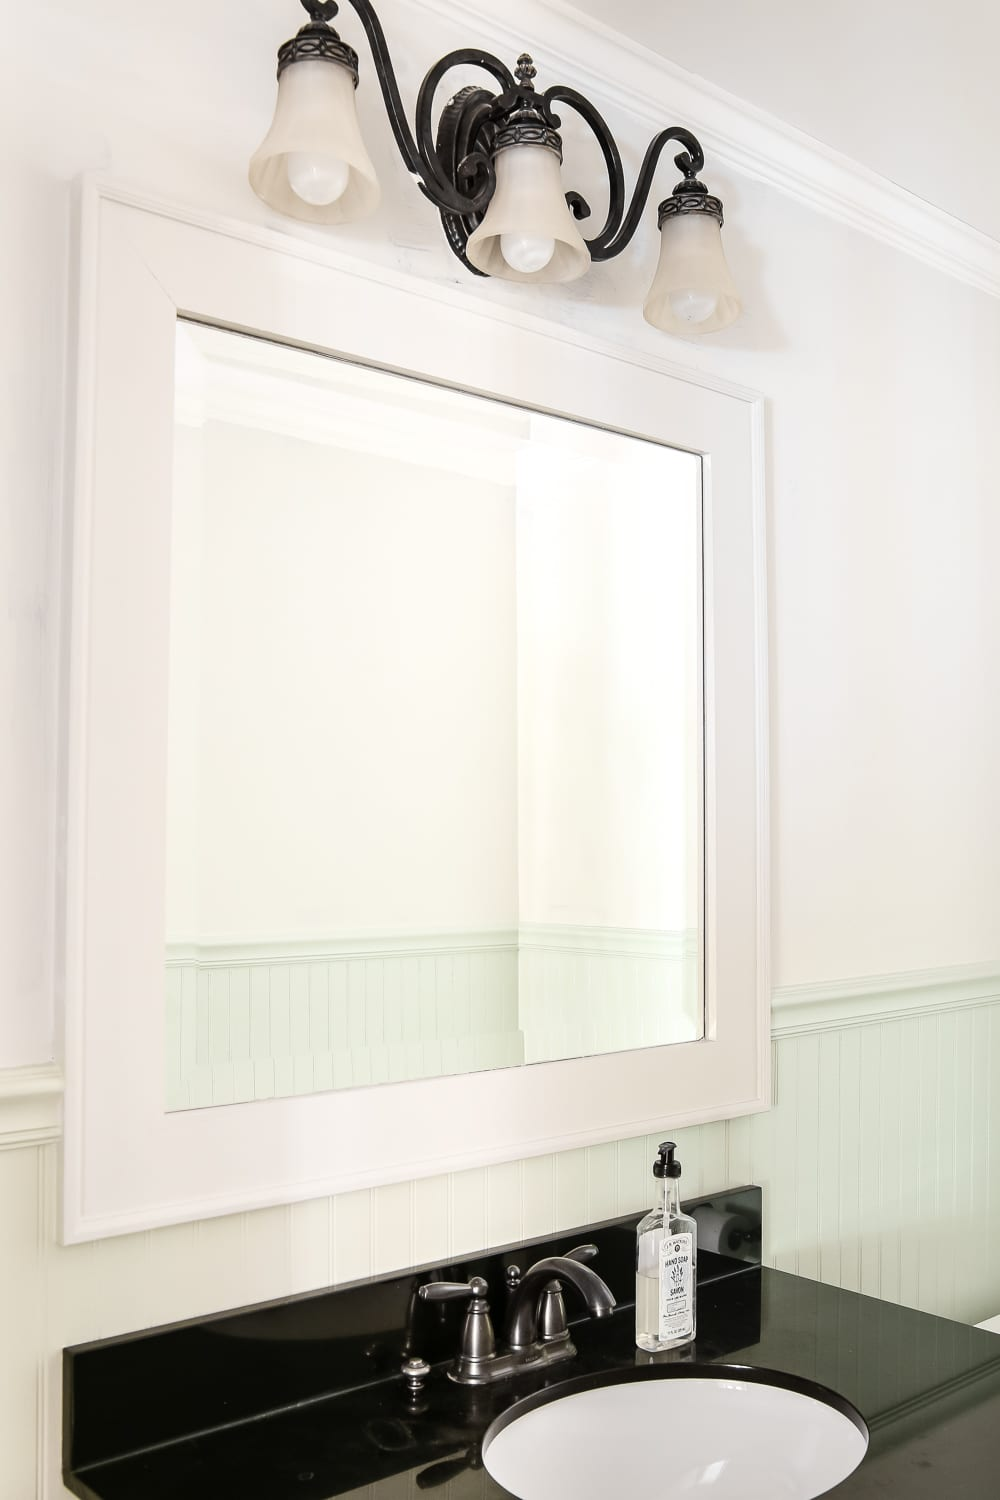 Dry Brushed Black Mirror Makeover | Blesserhouse.com   A Plain, White  Painted Bathroom